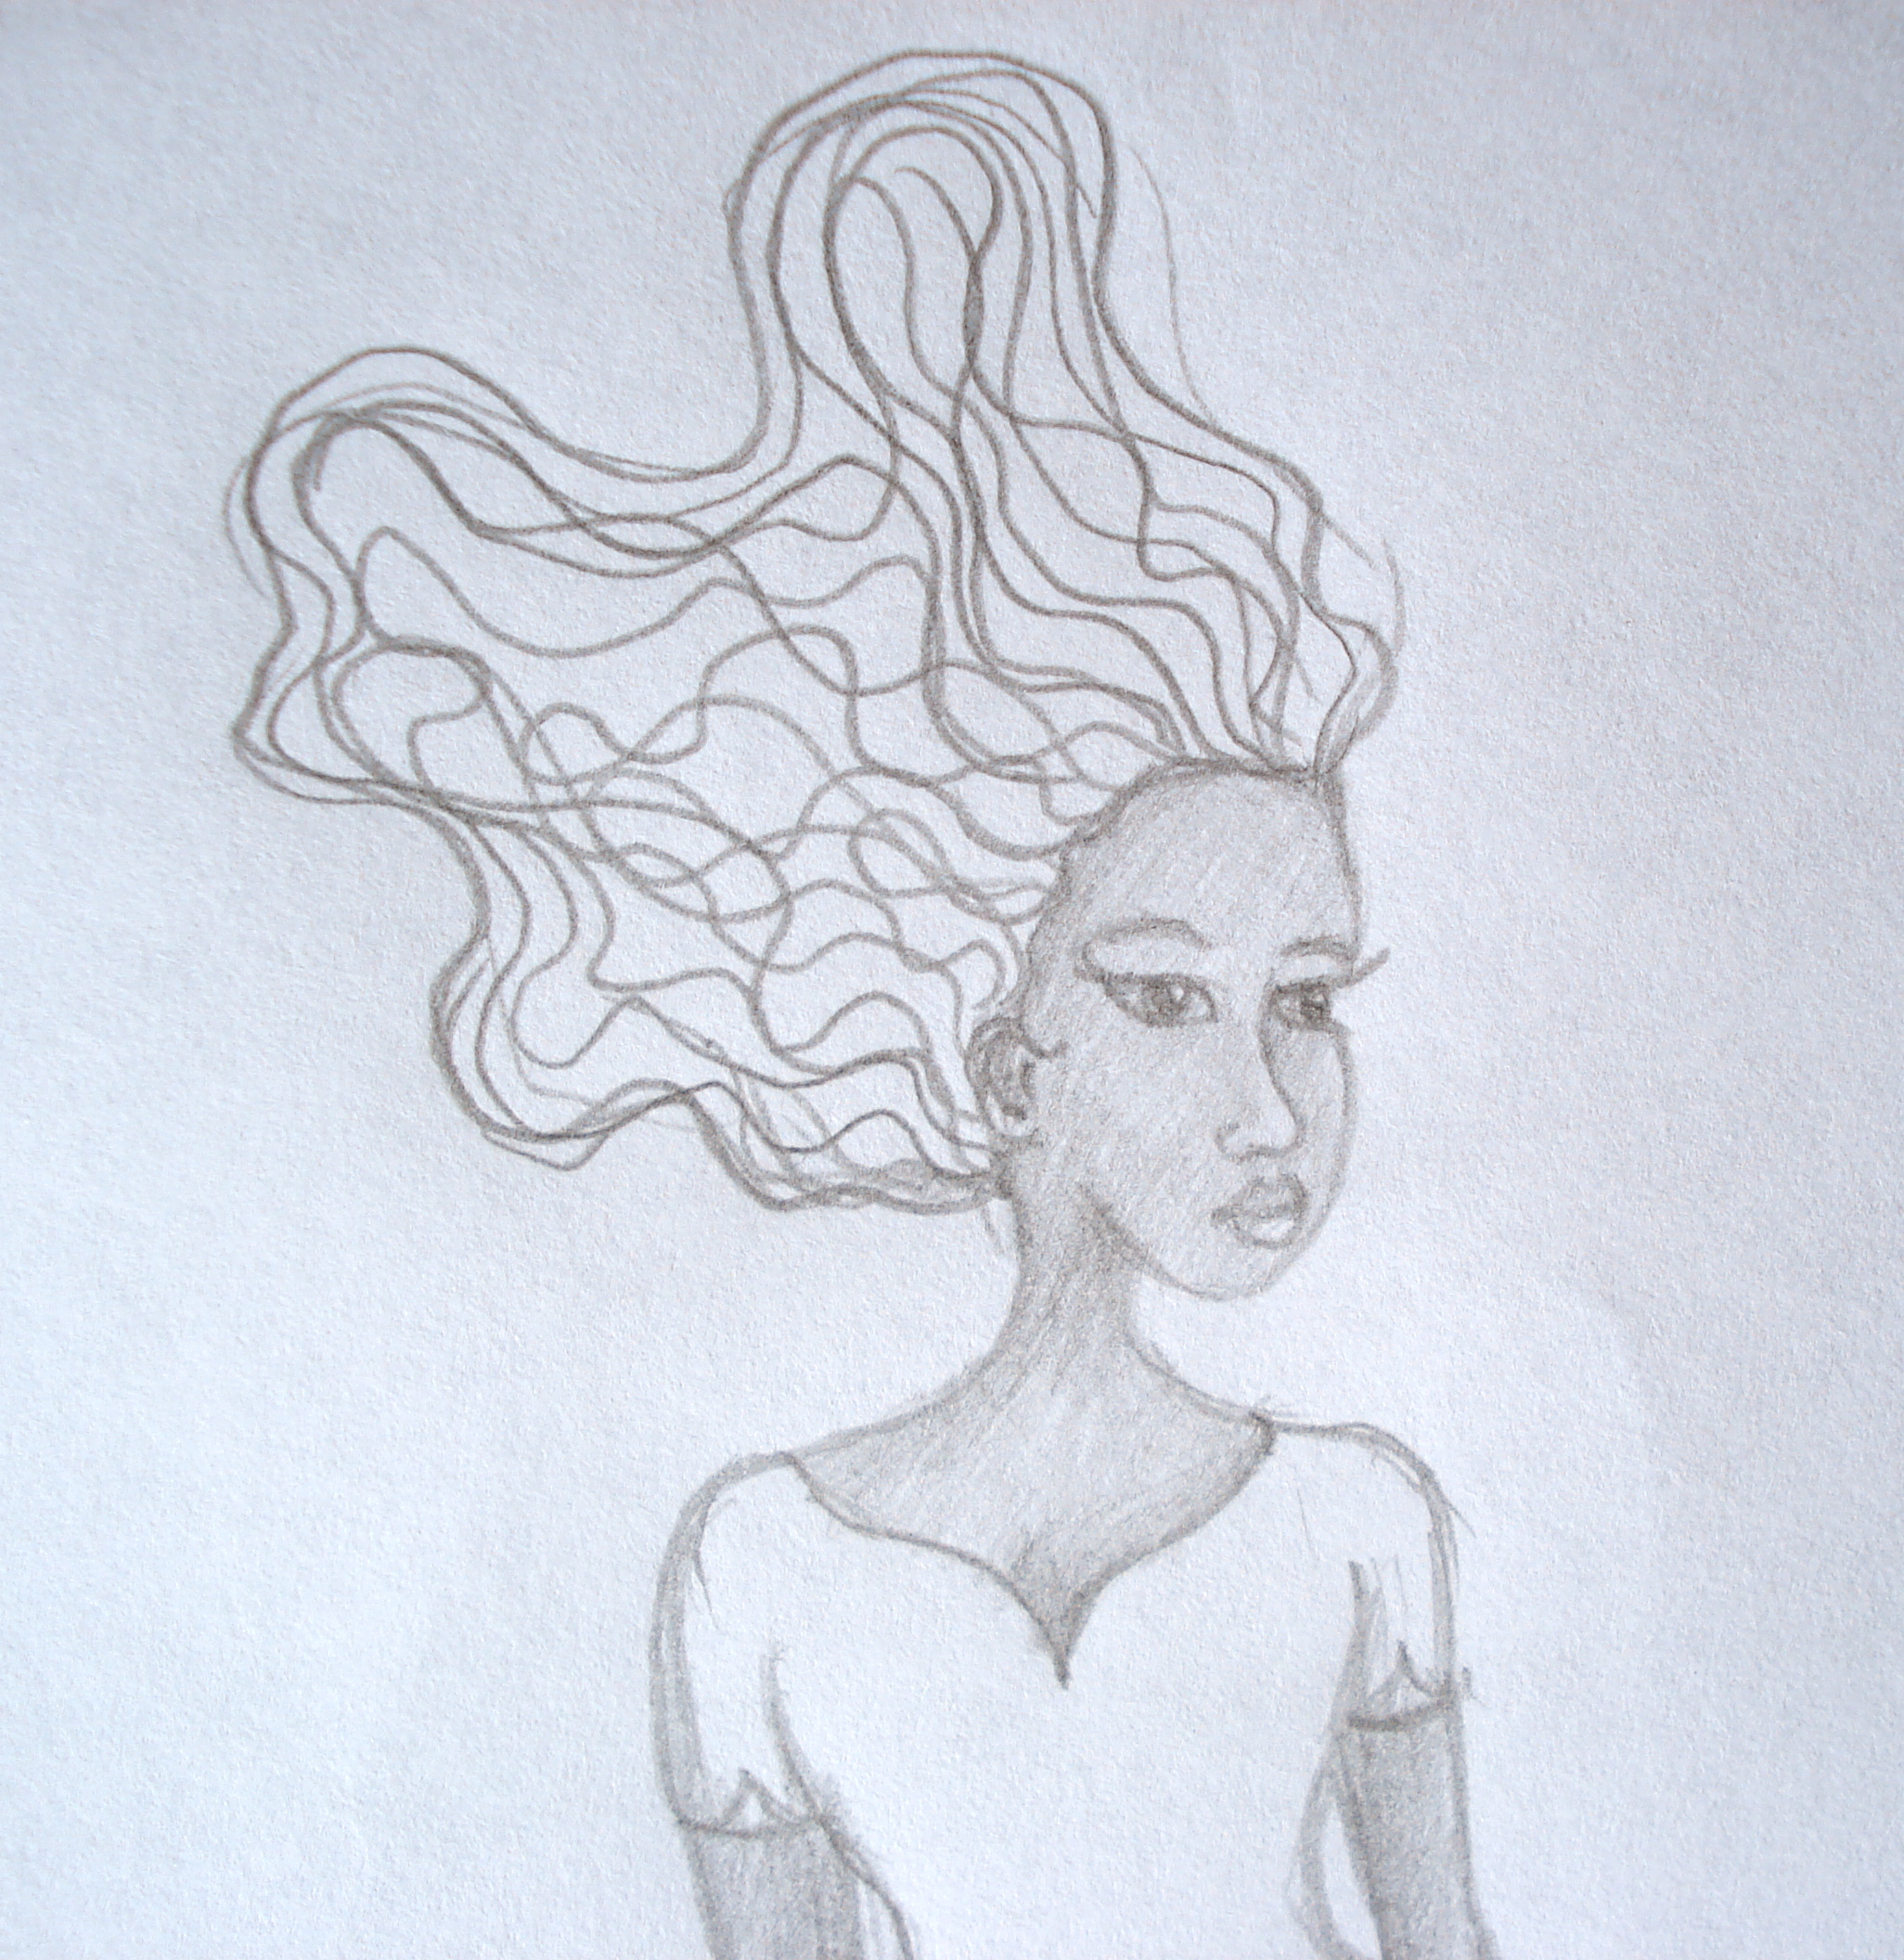 African American Woman Pencil Sketch - Close Up